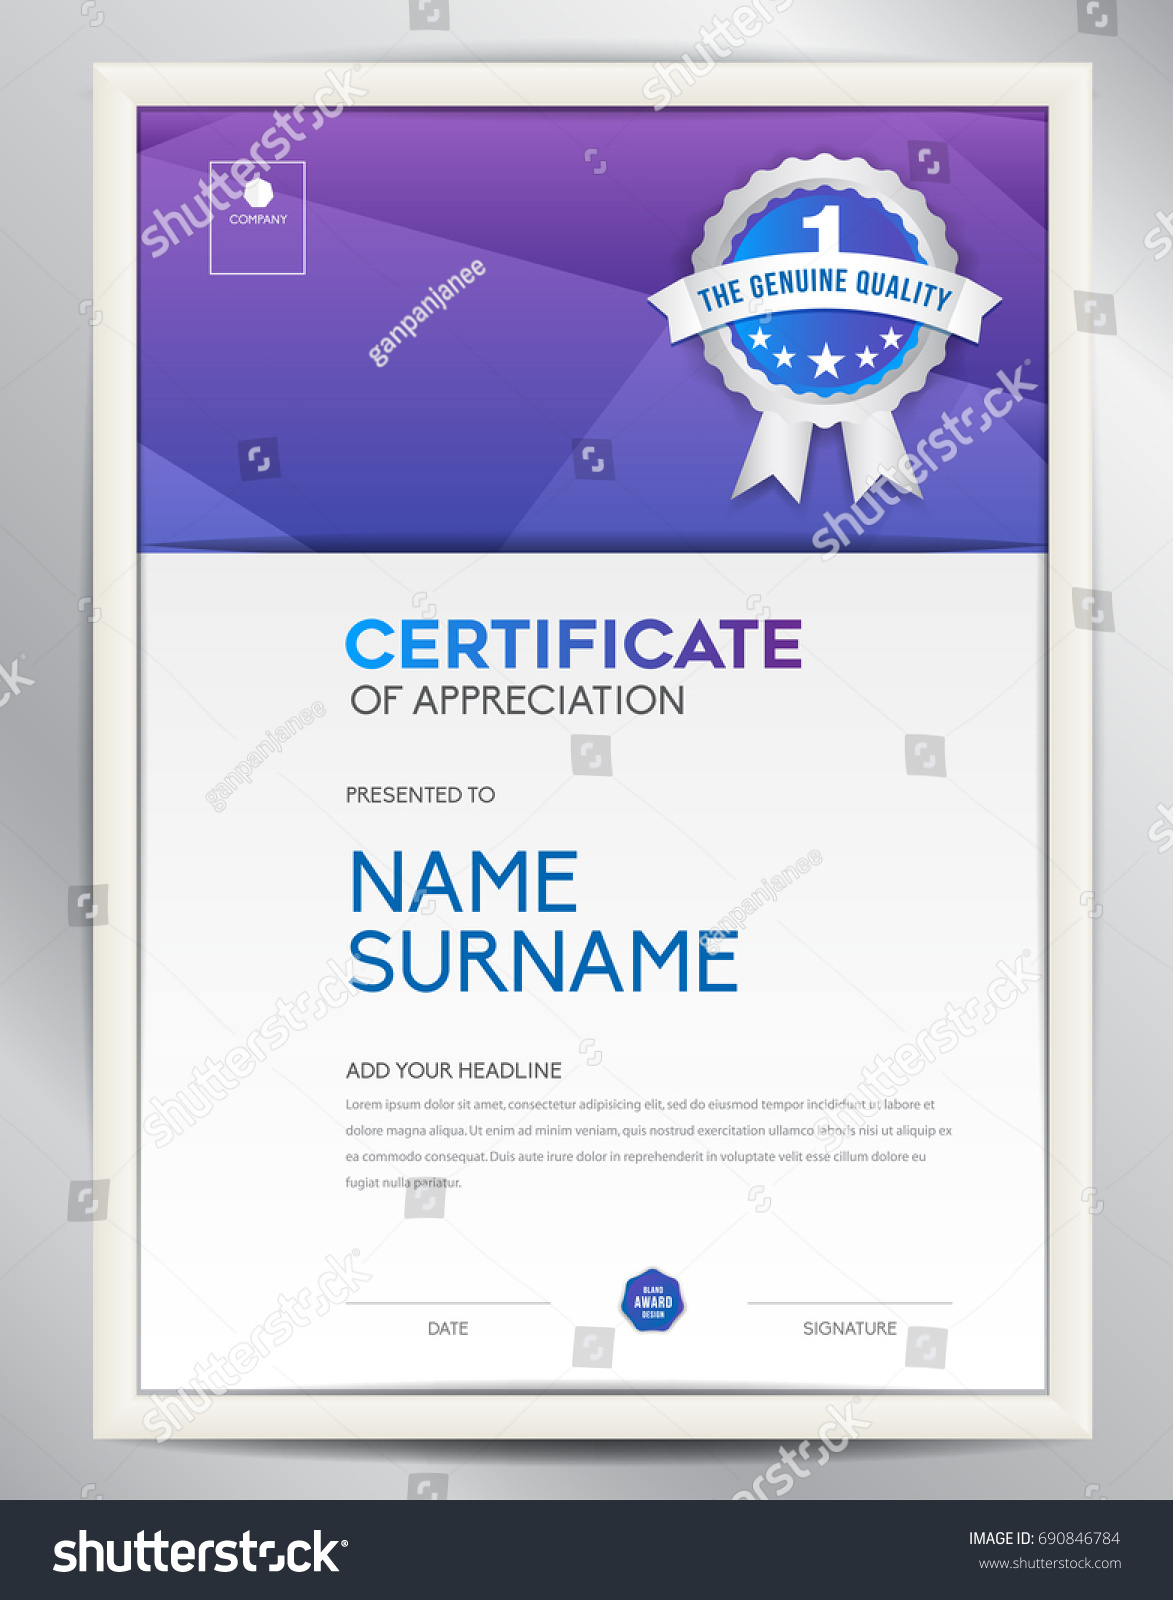 Certificate template vector illustration diploma layout stock certificate template vector illustration diploma layout in a4 size business flyer design advertisement xflitez Gallery